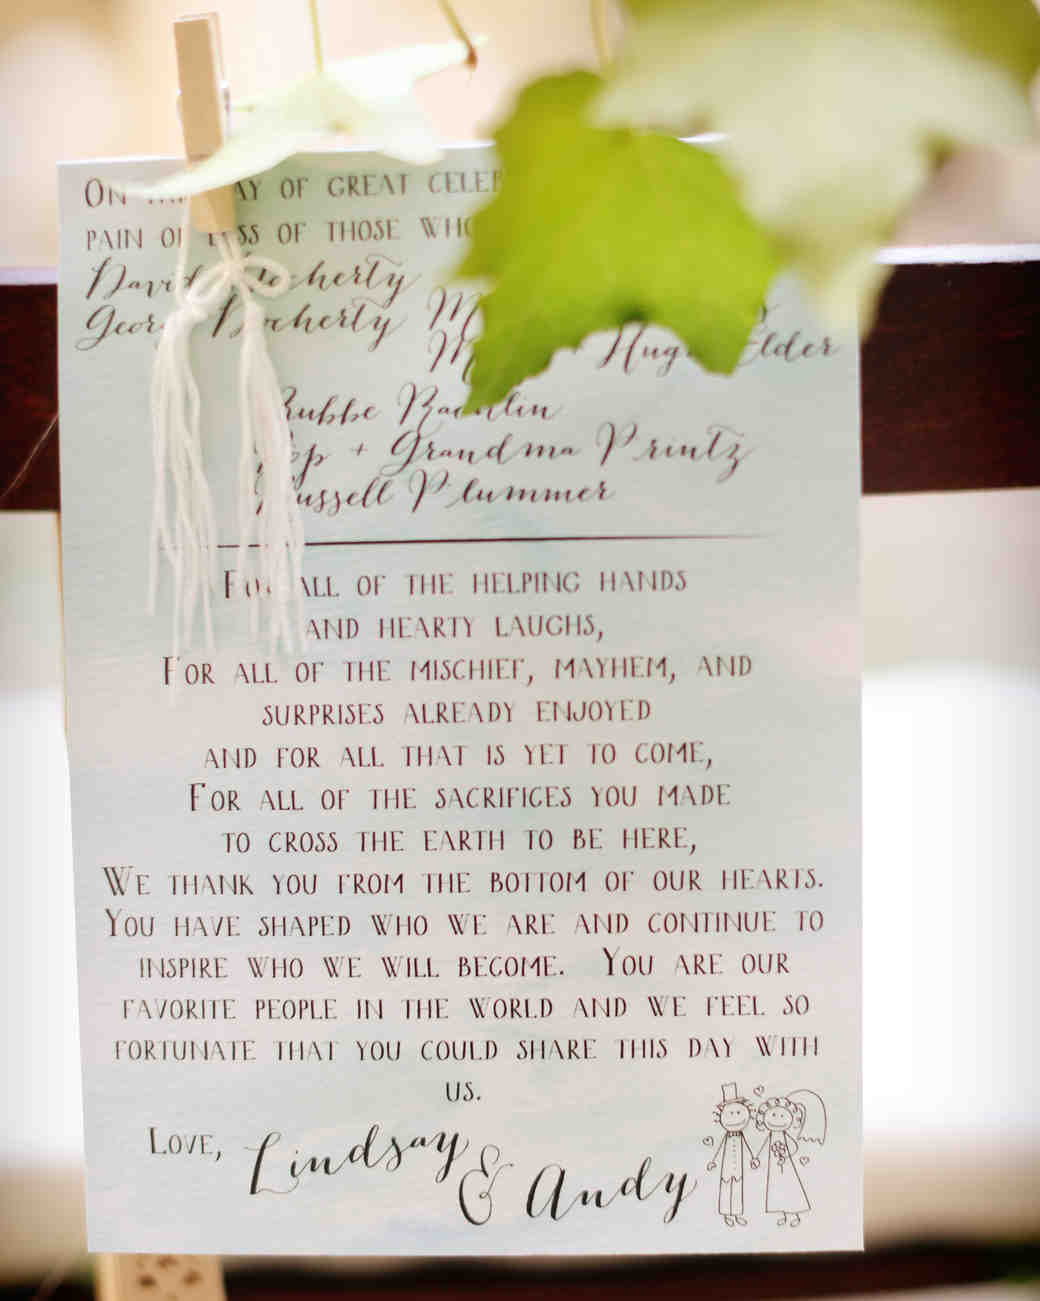 lindsay-andy-wedding-program-4513-s111659-1114.jpg